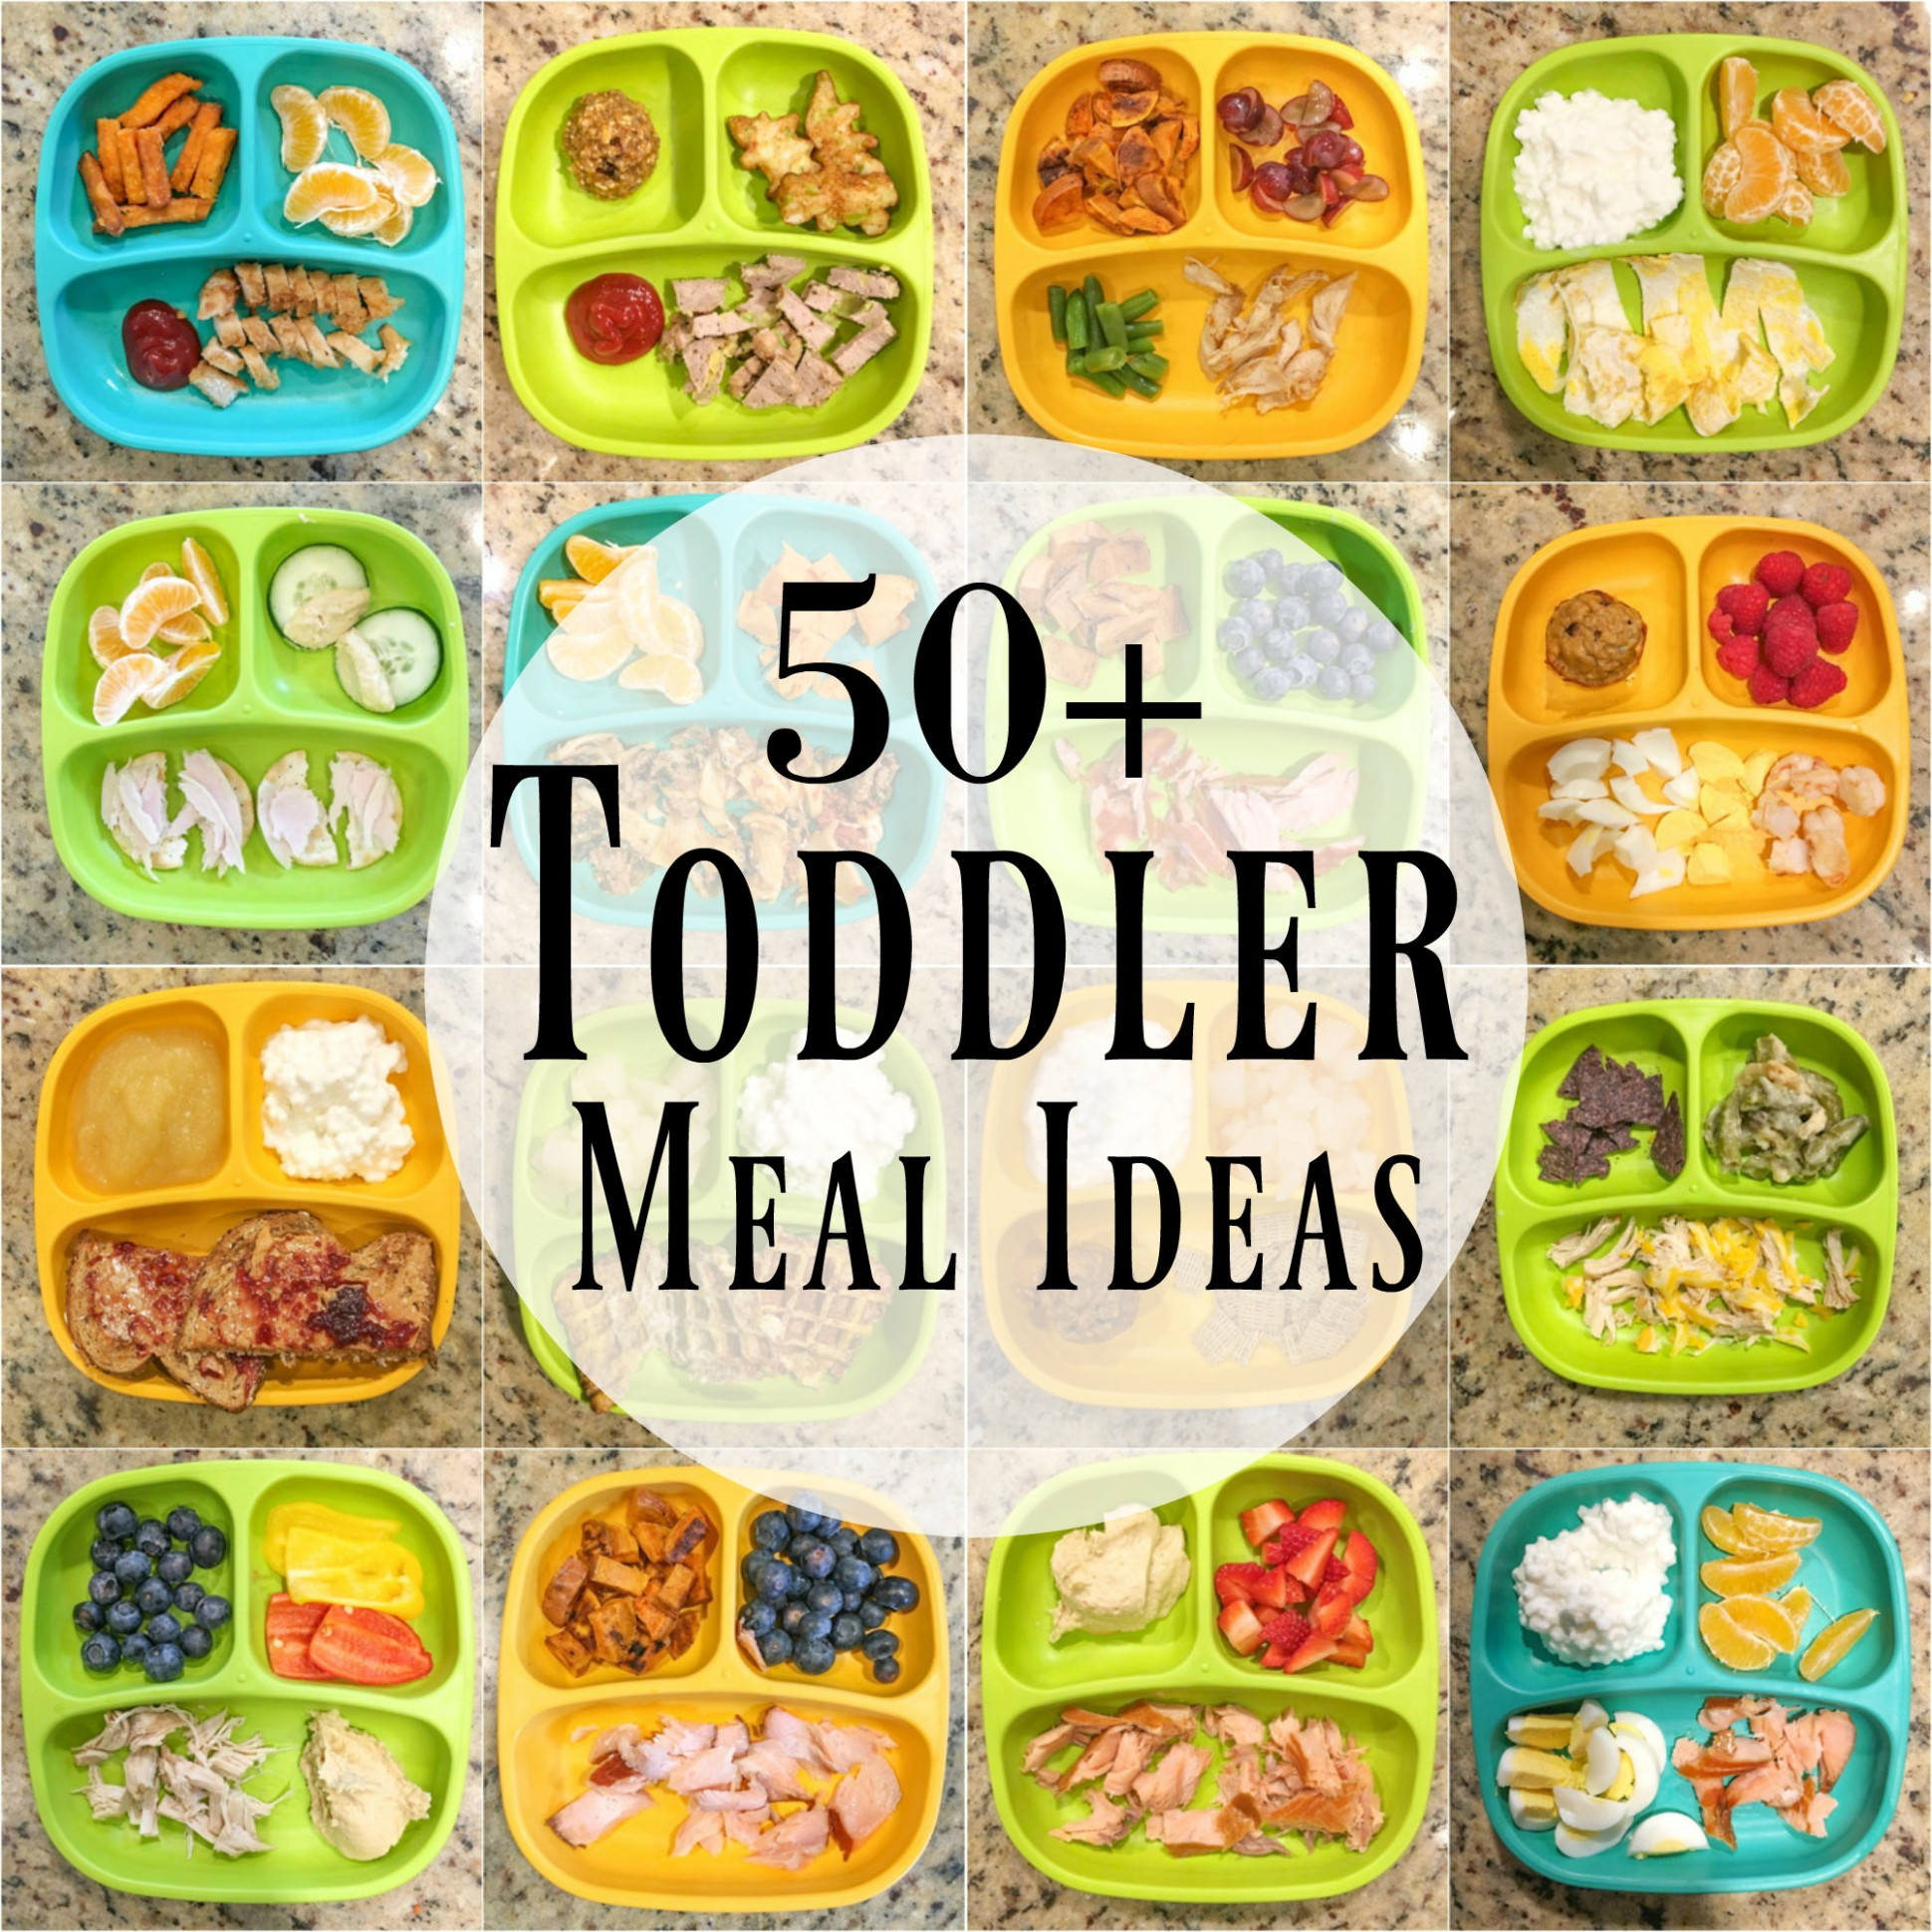 12 Healthy Toddler Meal Ideas | The Lean Green Bean - recipes breakfast for dinner